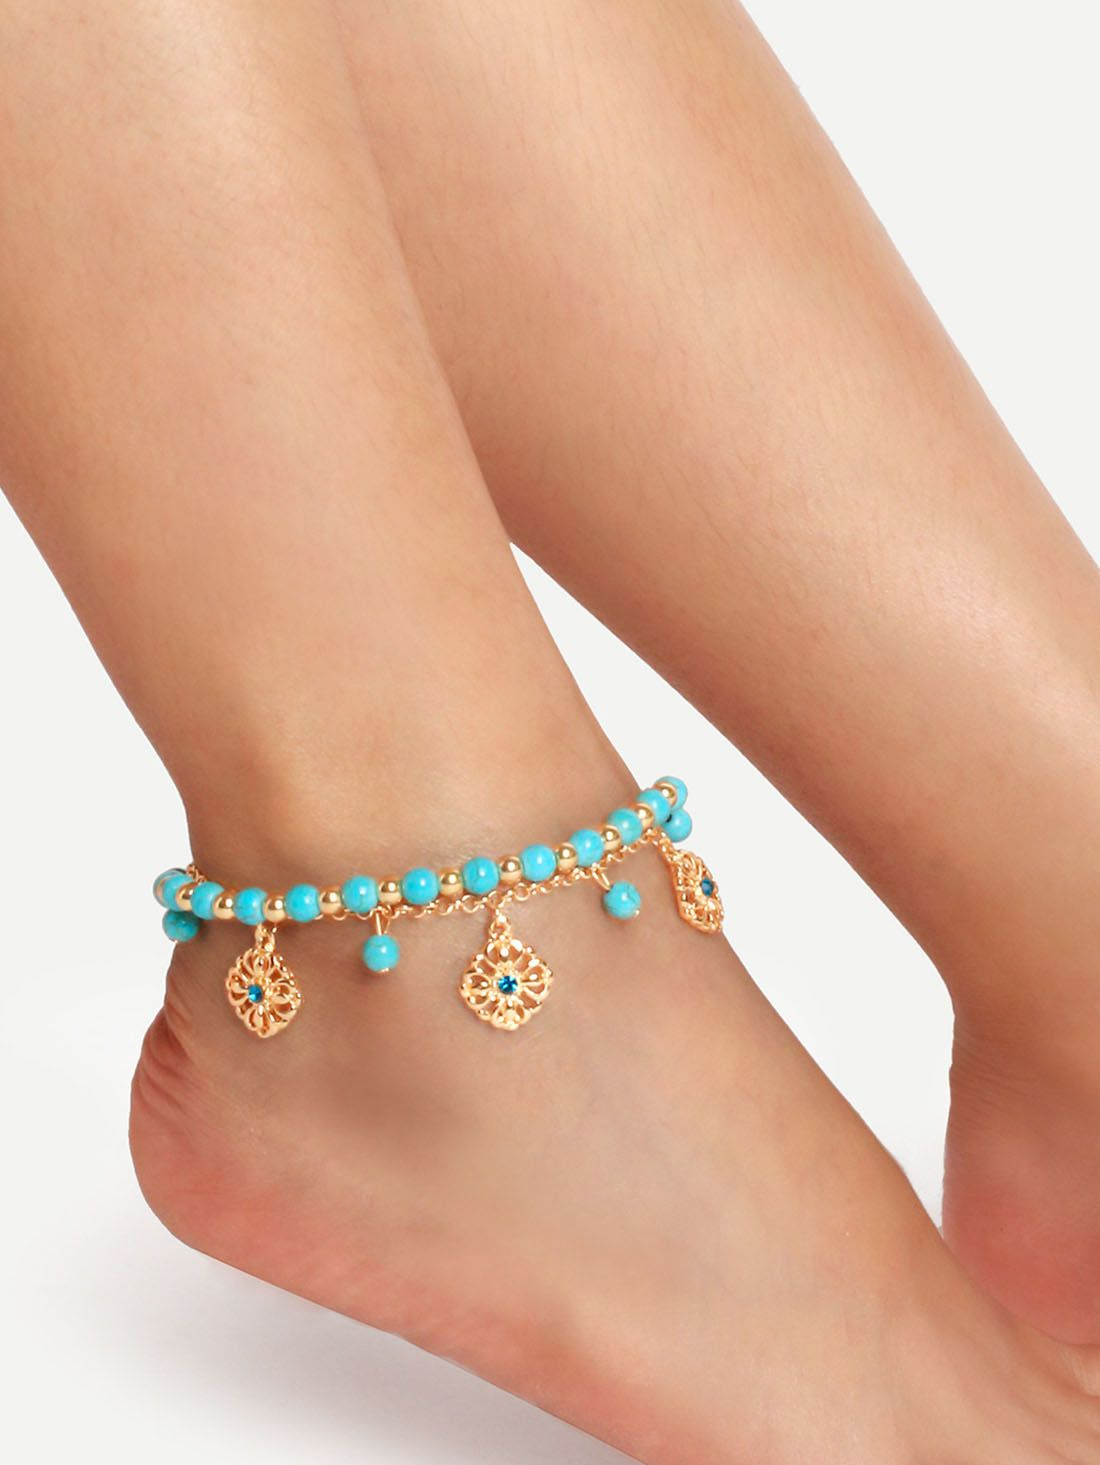 pin the bracelet butterflies dark stainless glow steel anklet ankle in bracelets designer